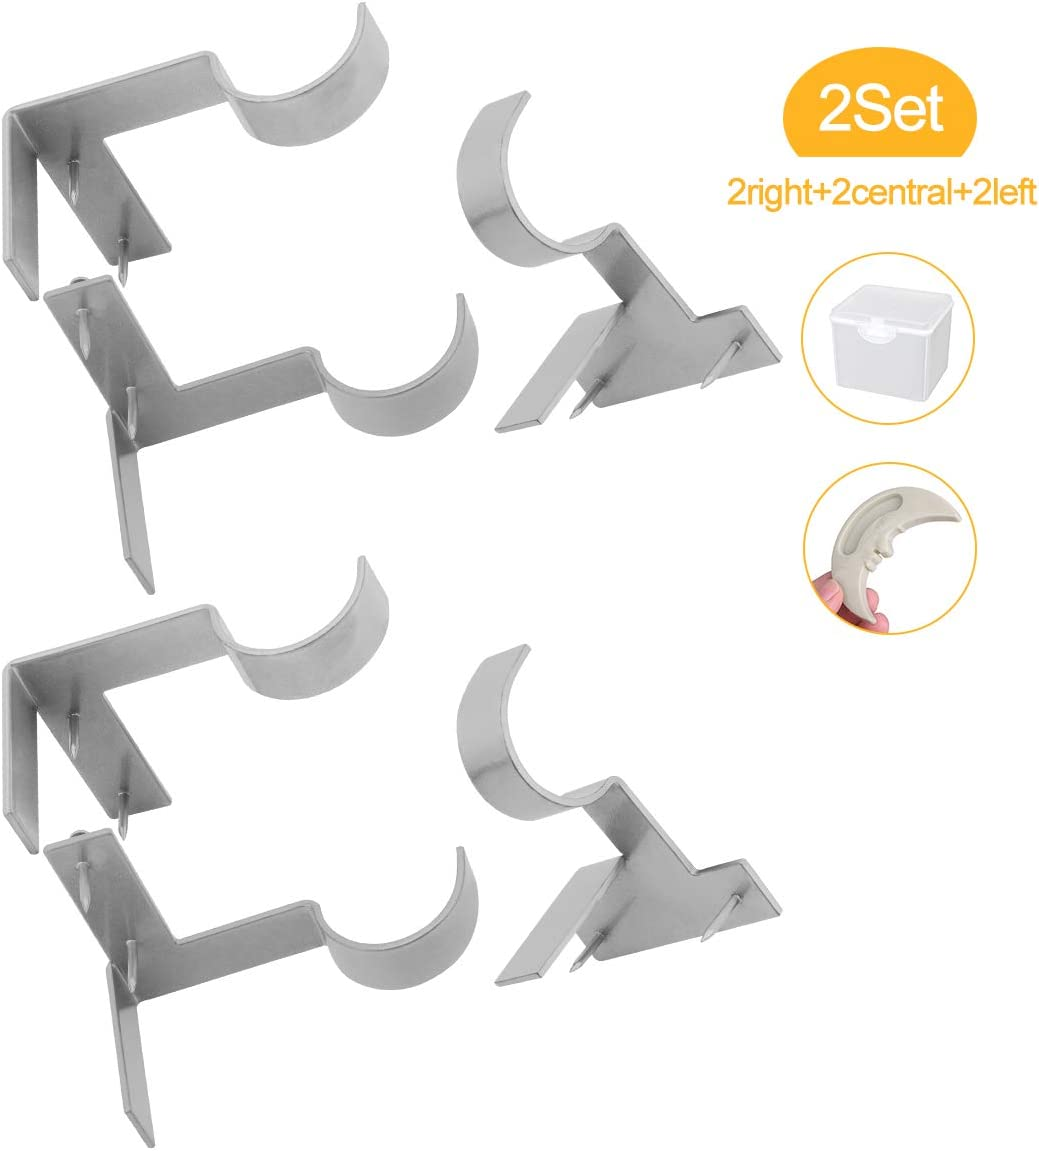 Lnlofen Single Curtain Rod Holders - 2Set(6Pcs) - Curtain Rod Brackets - No Drilling - Adjustable - Tap Right into Window Frame for Window Bedroom Decoration (Silver)